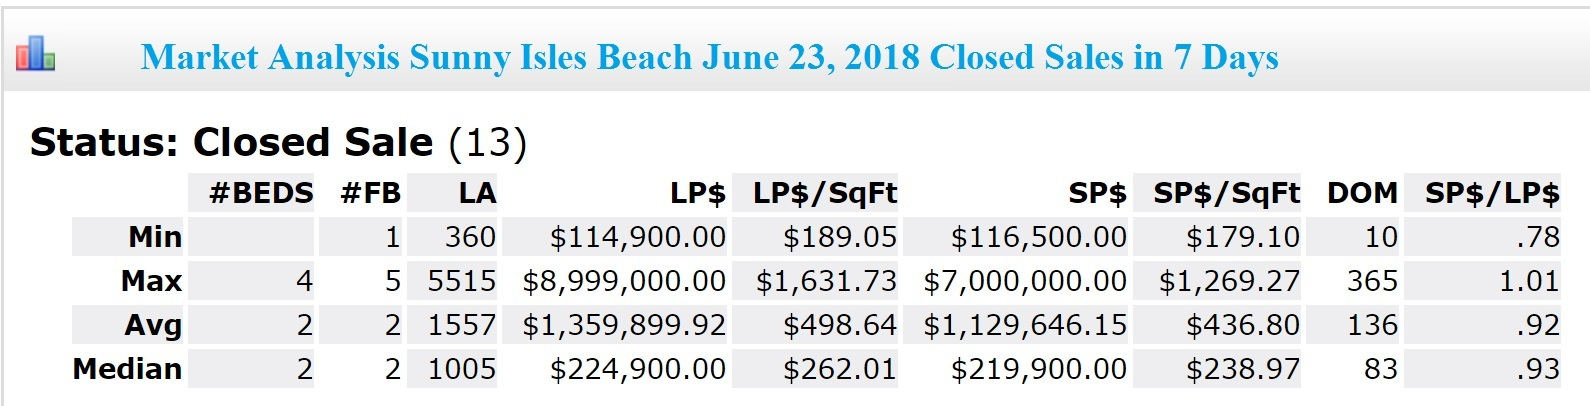 Market Analysis Sunny Isles Beach Closes Sales in 7 days June 23